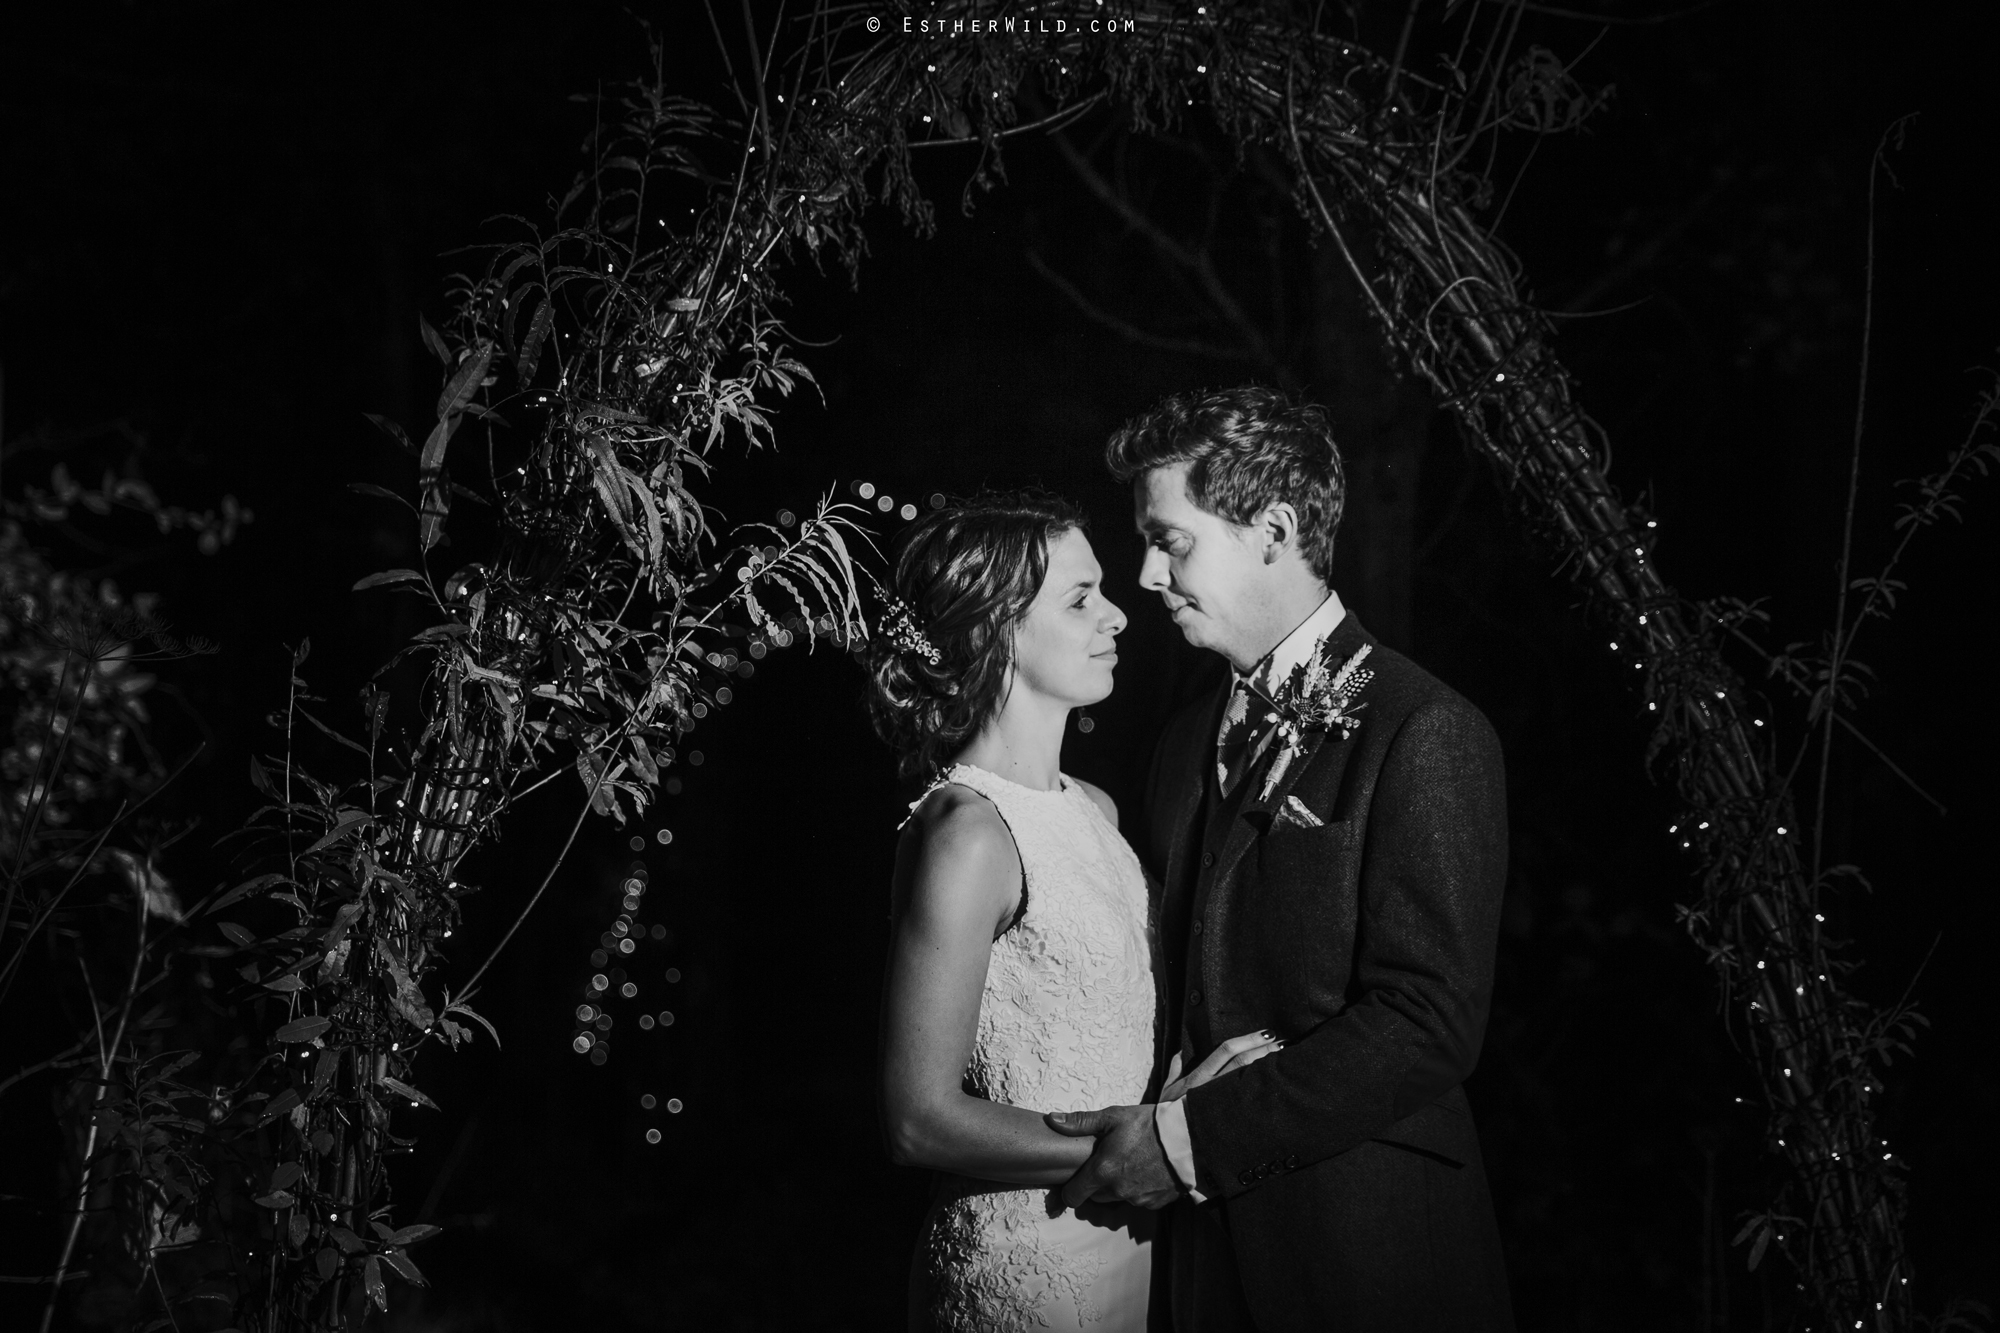 Wedding_Photographer_Chaucer_Barn_Holt_Norfolk_Country_Rustic_Venue_Copyright_Esther_Wild_IMG_2515-2.jpg